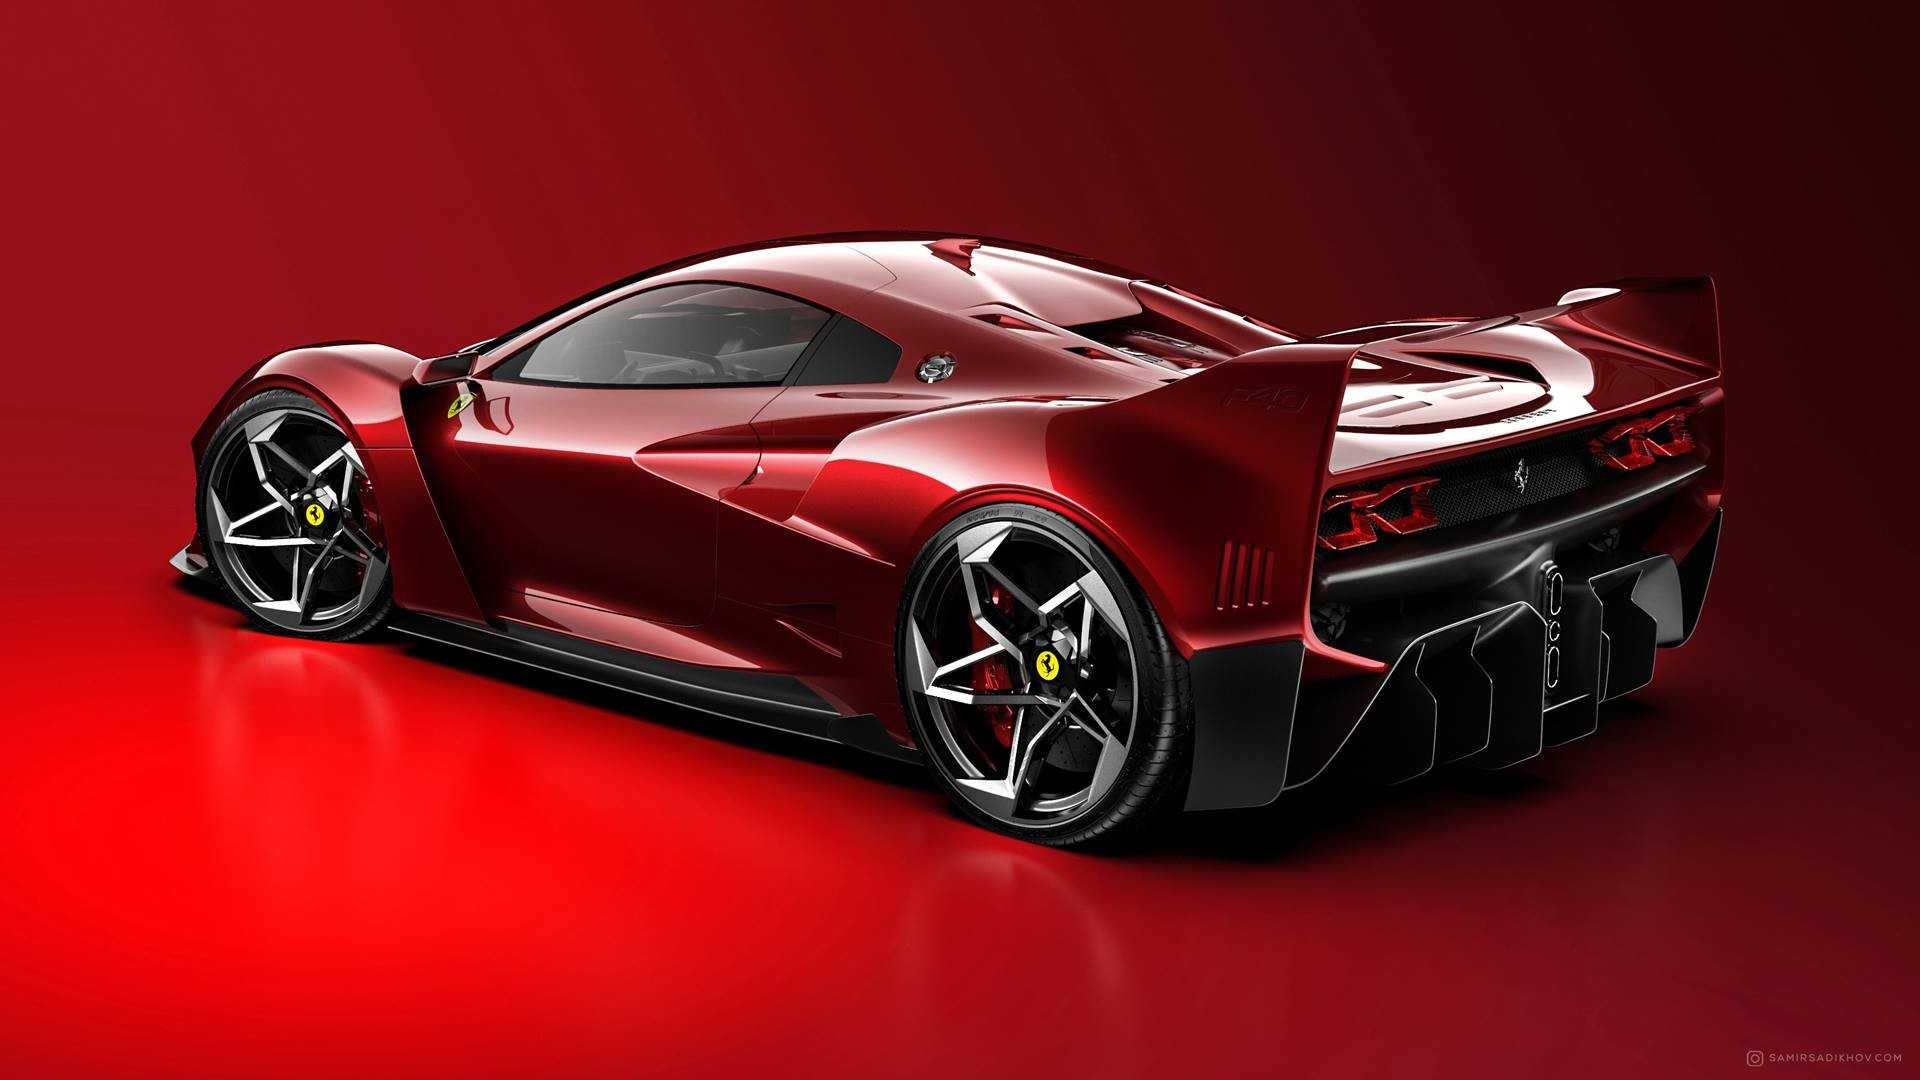 70 All New 2020 Ferrari Cars Ratings